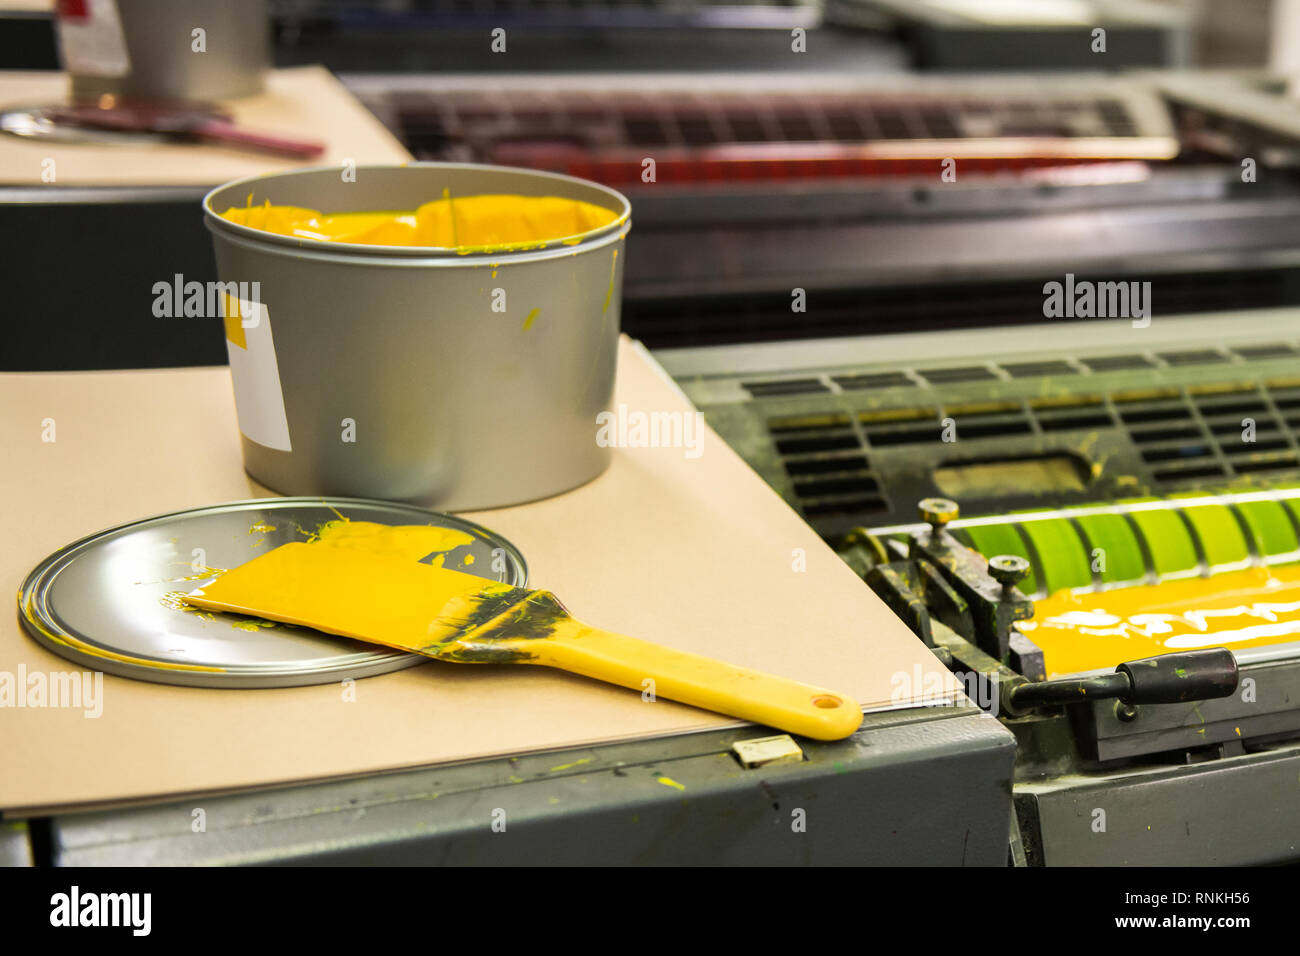 Detail of rollers in offset printing machine - Stock Image